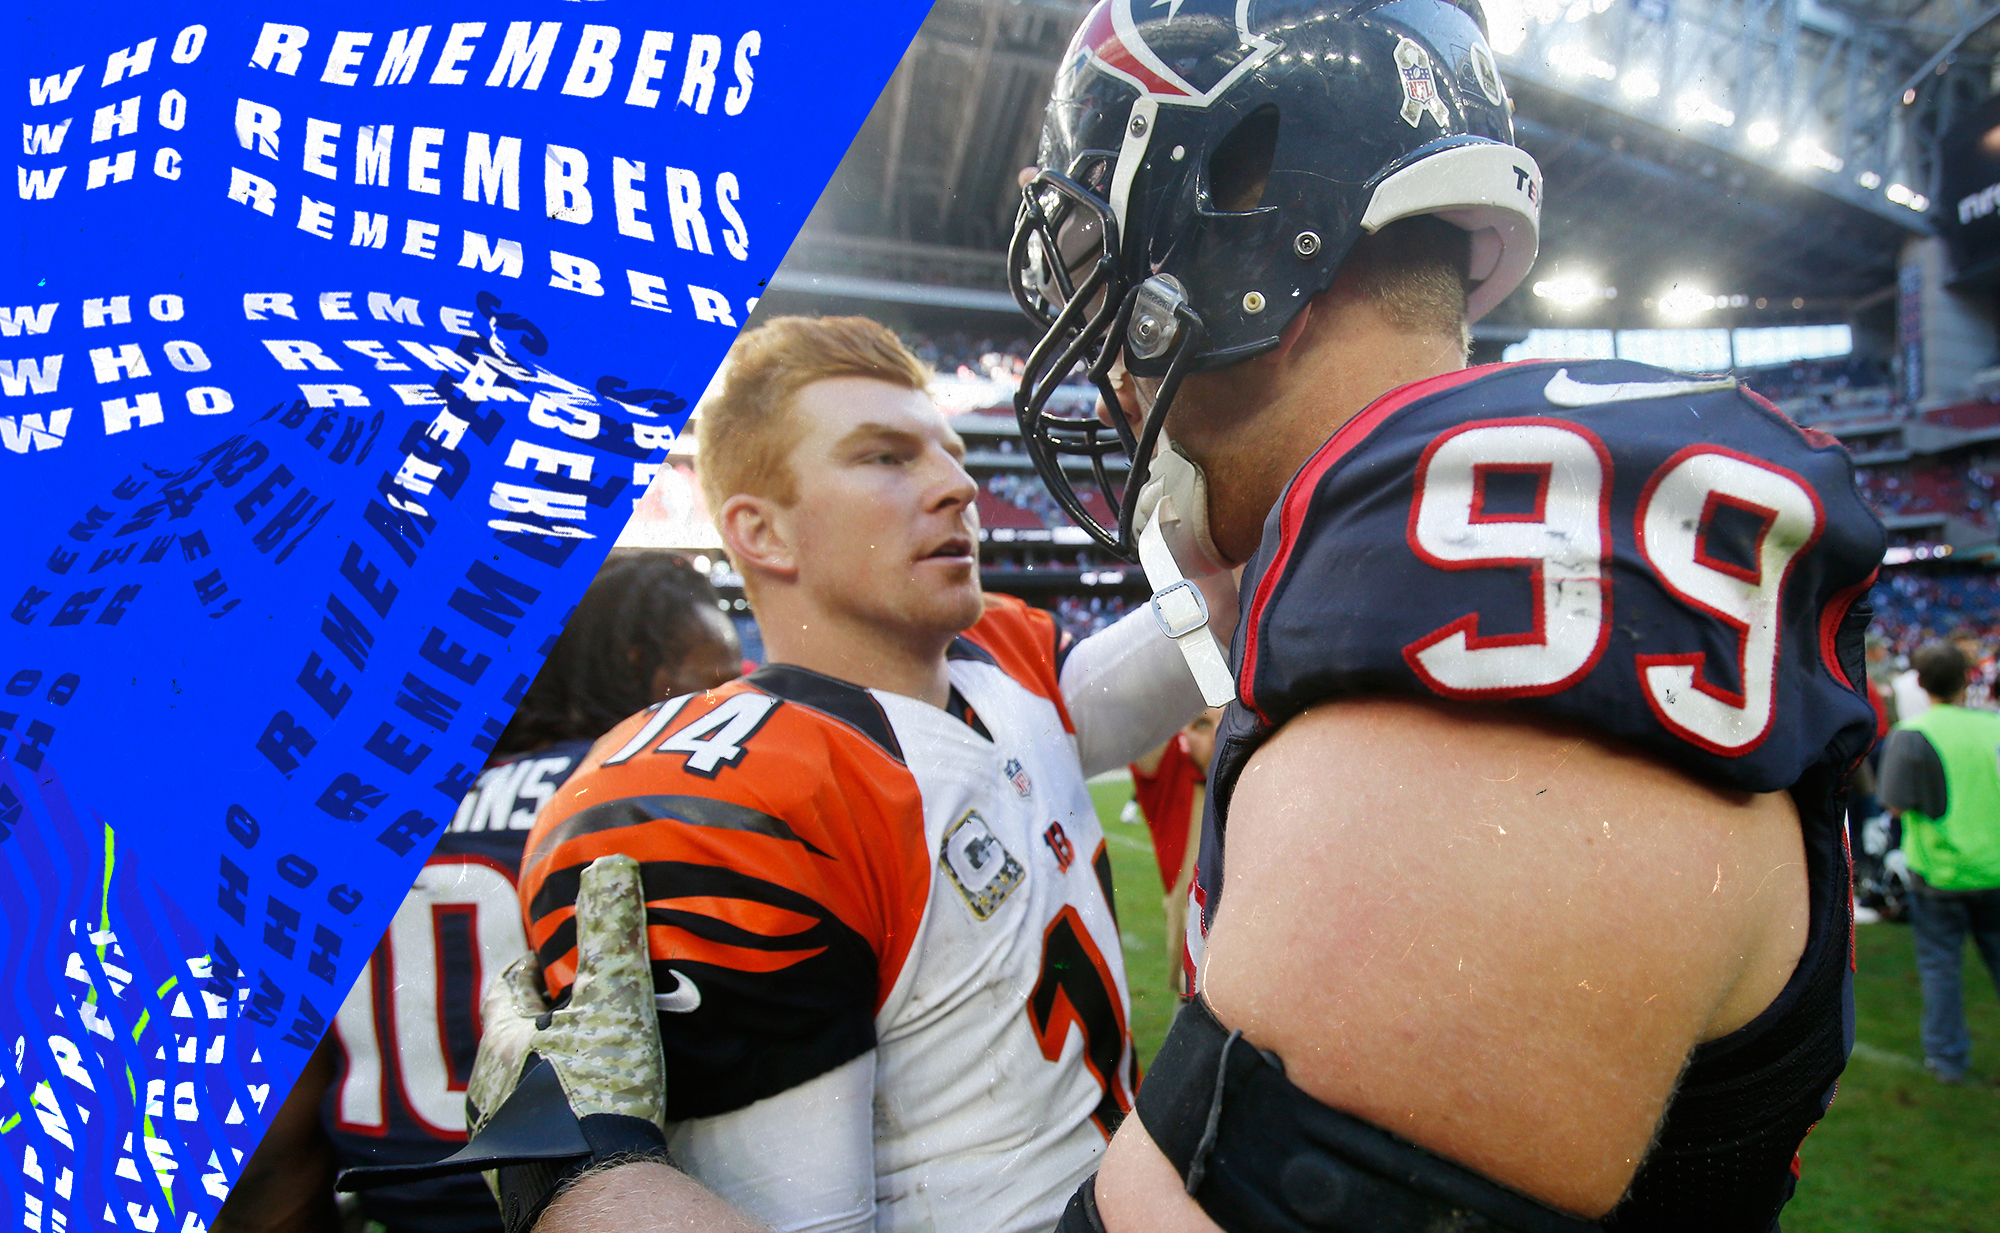 J.J. Watt made fun of Andy Dalton's nickname and created the most pointless NFL beef ever